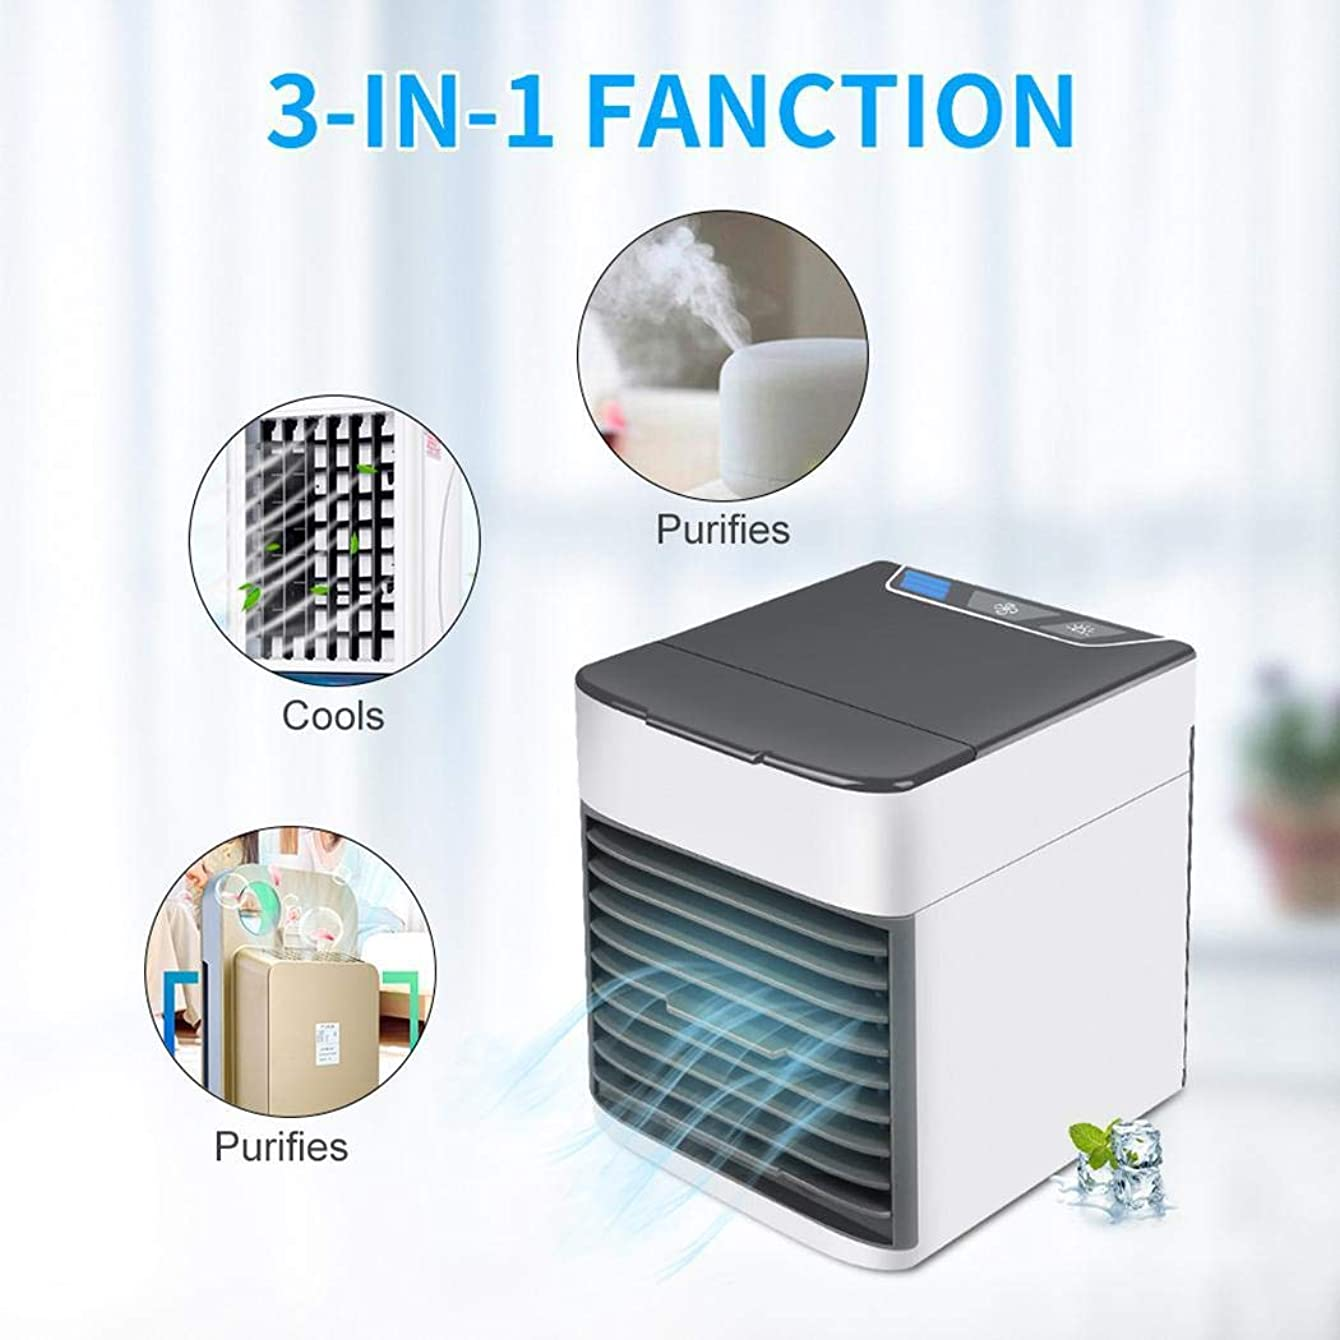 KOKOBUY Portable Air Conditioner Fan, Mini Evaporative Air Cooler, Portable USB Mini Desktop Fan with 3 Speeds for Office Household Outdoors